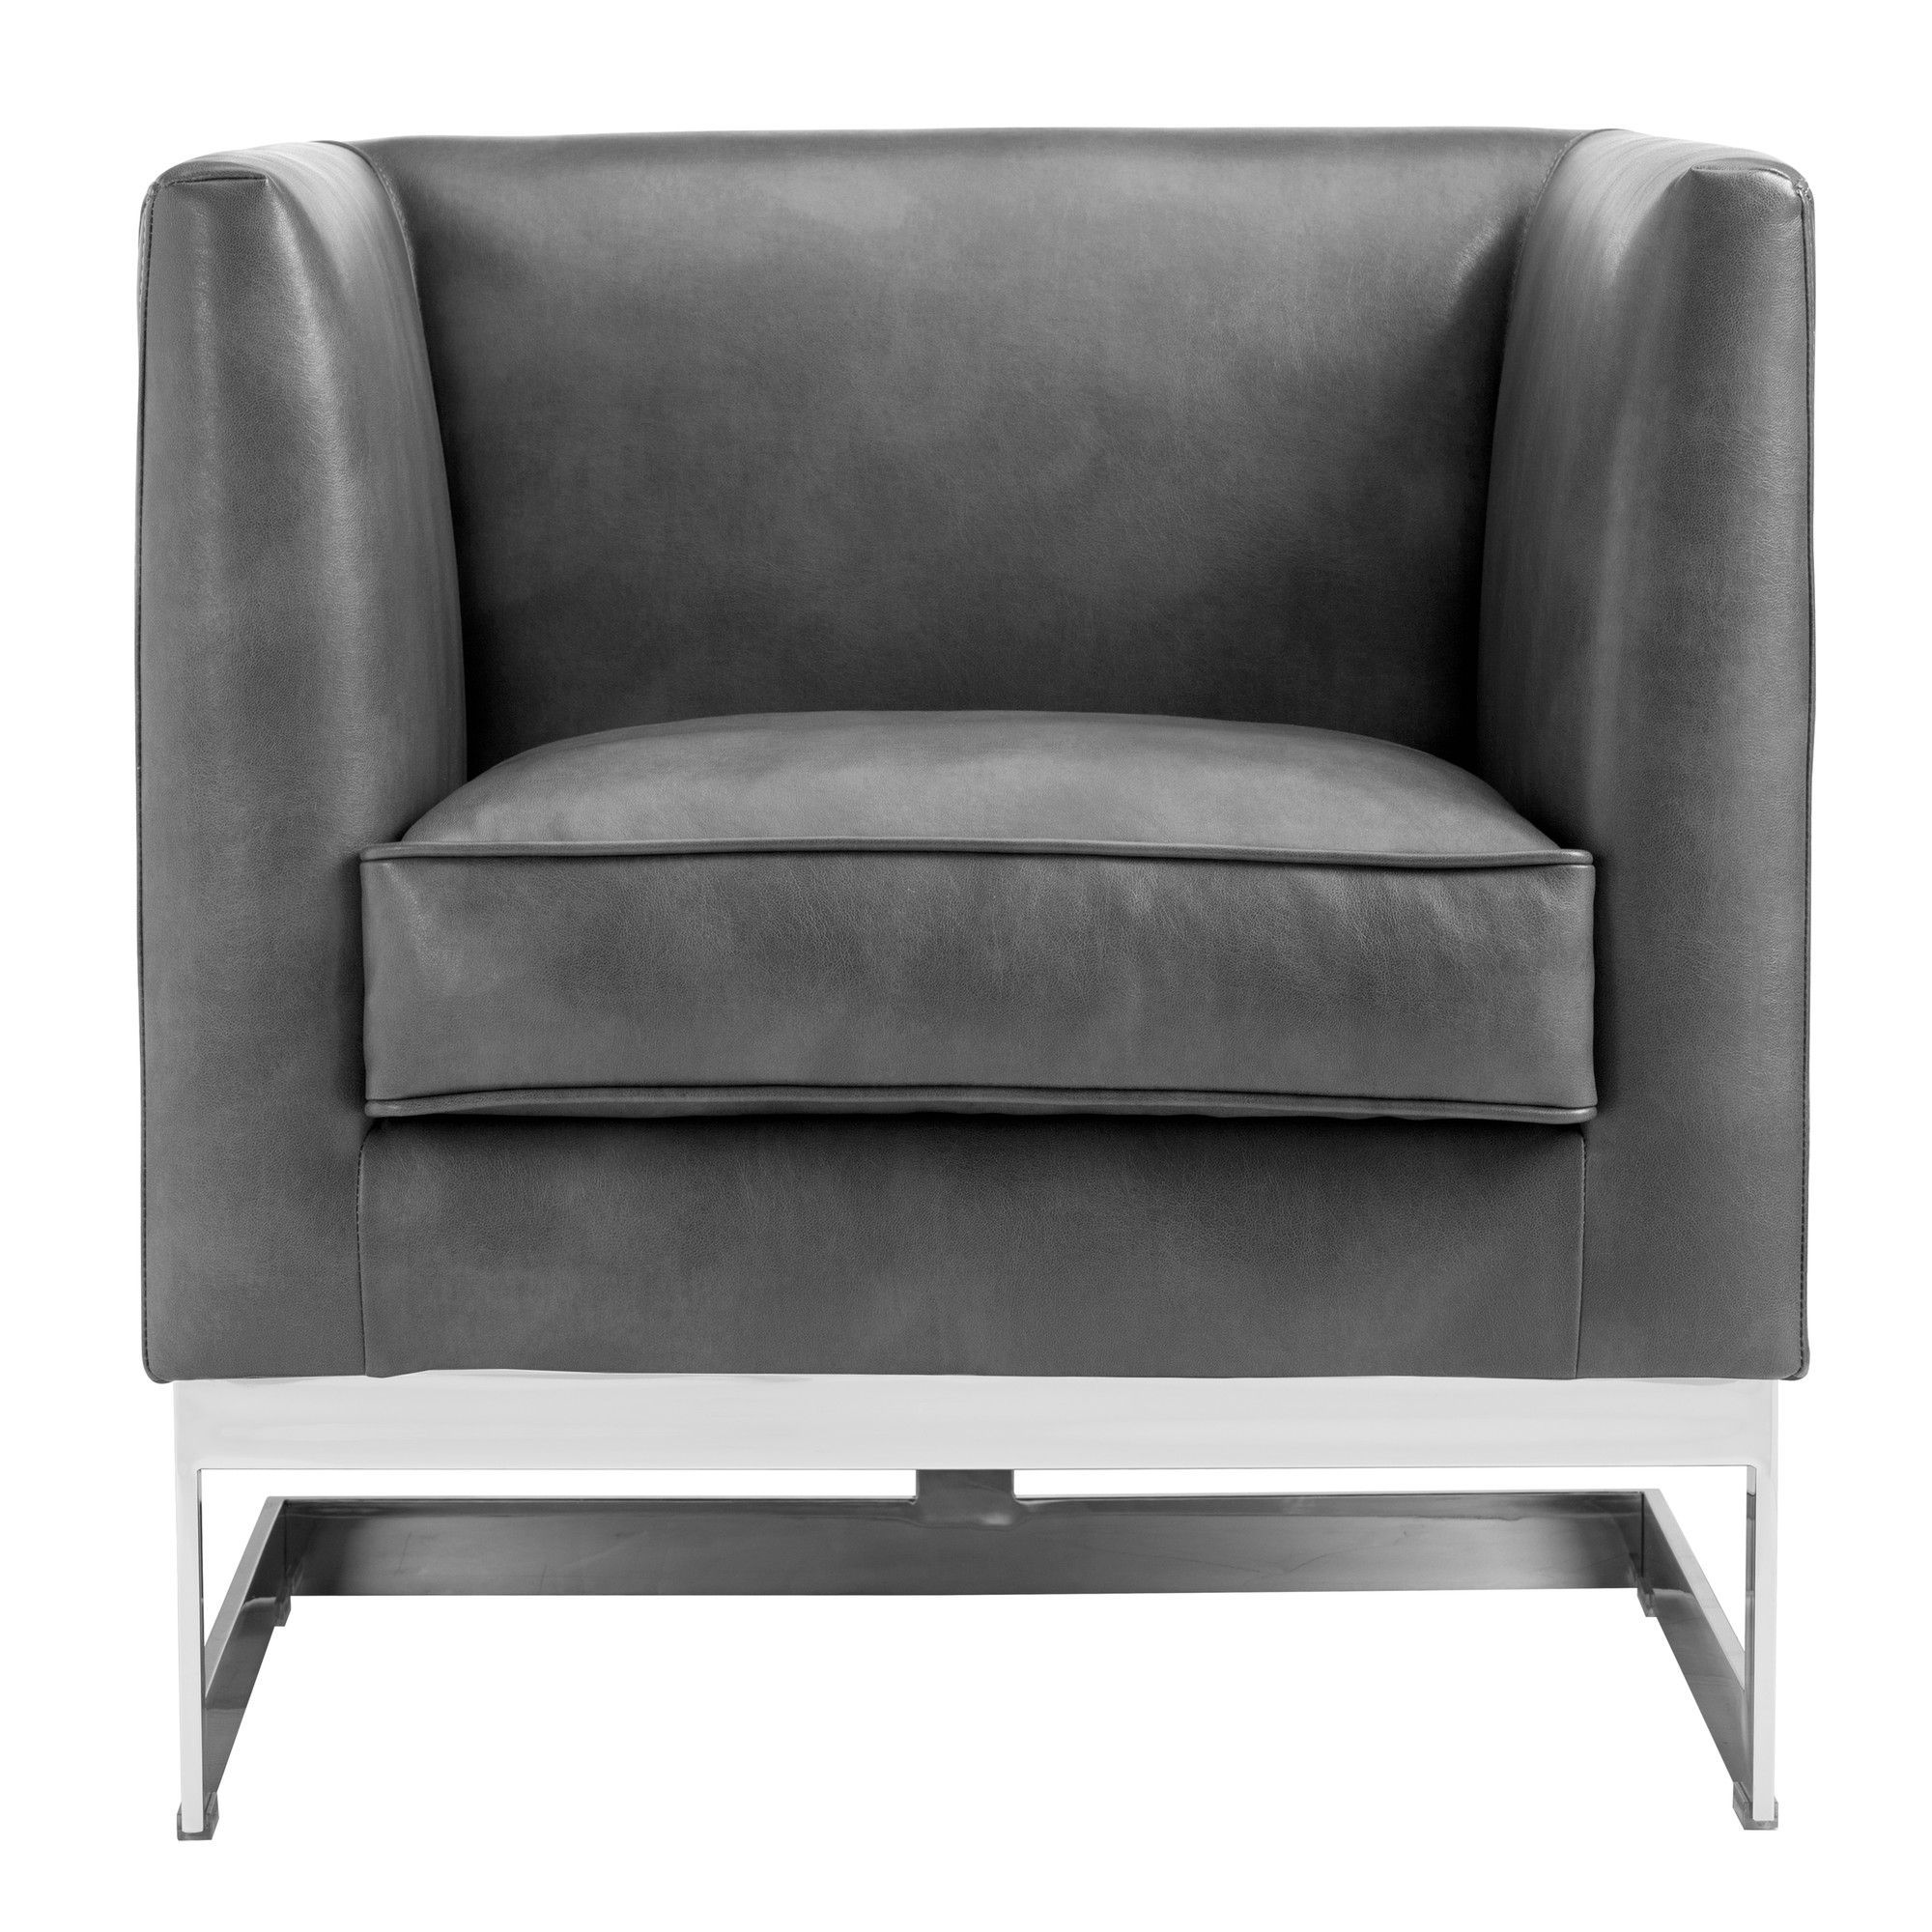 club soho arm chair products pinterest products rh pinterest com